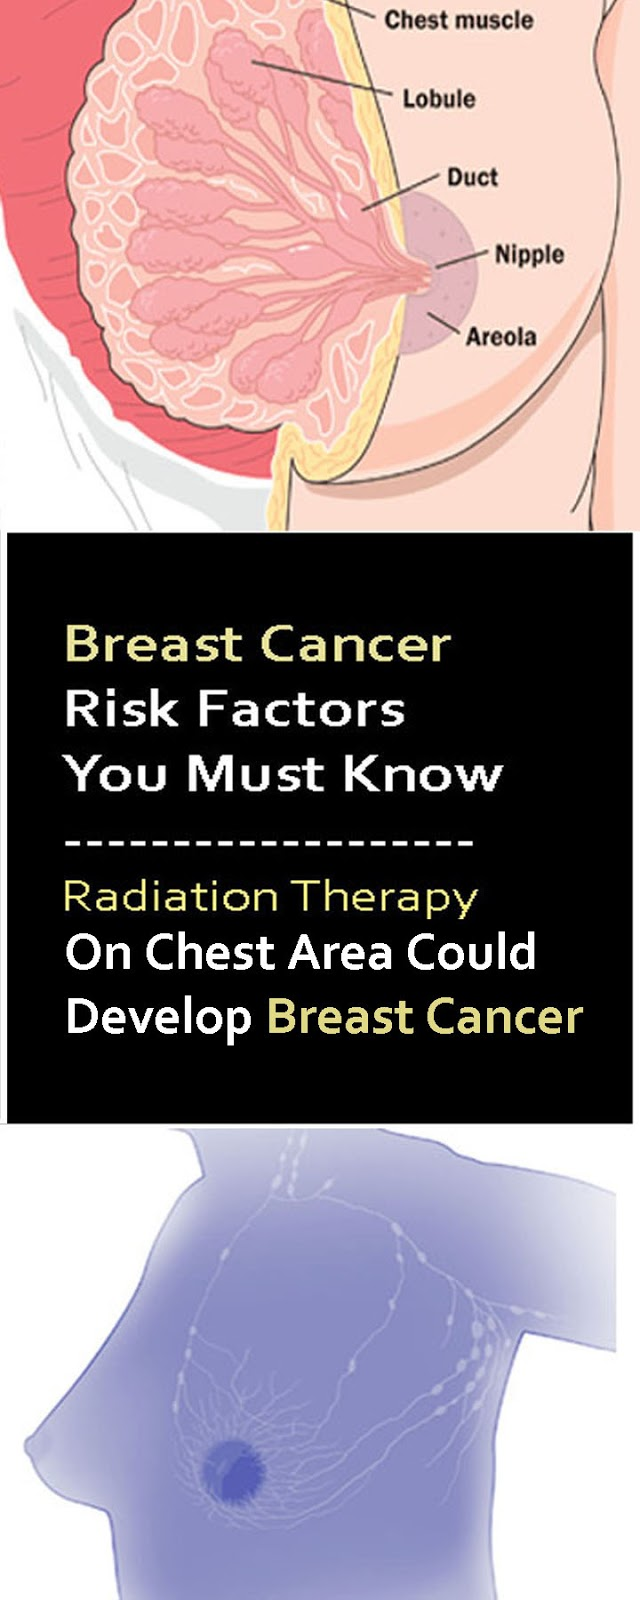 Breast Cancer Risk Factors You Must Know